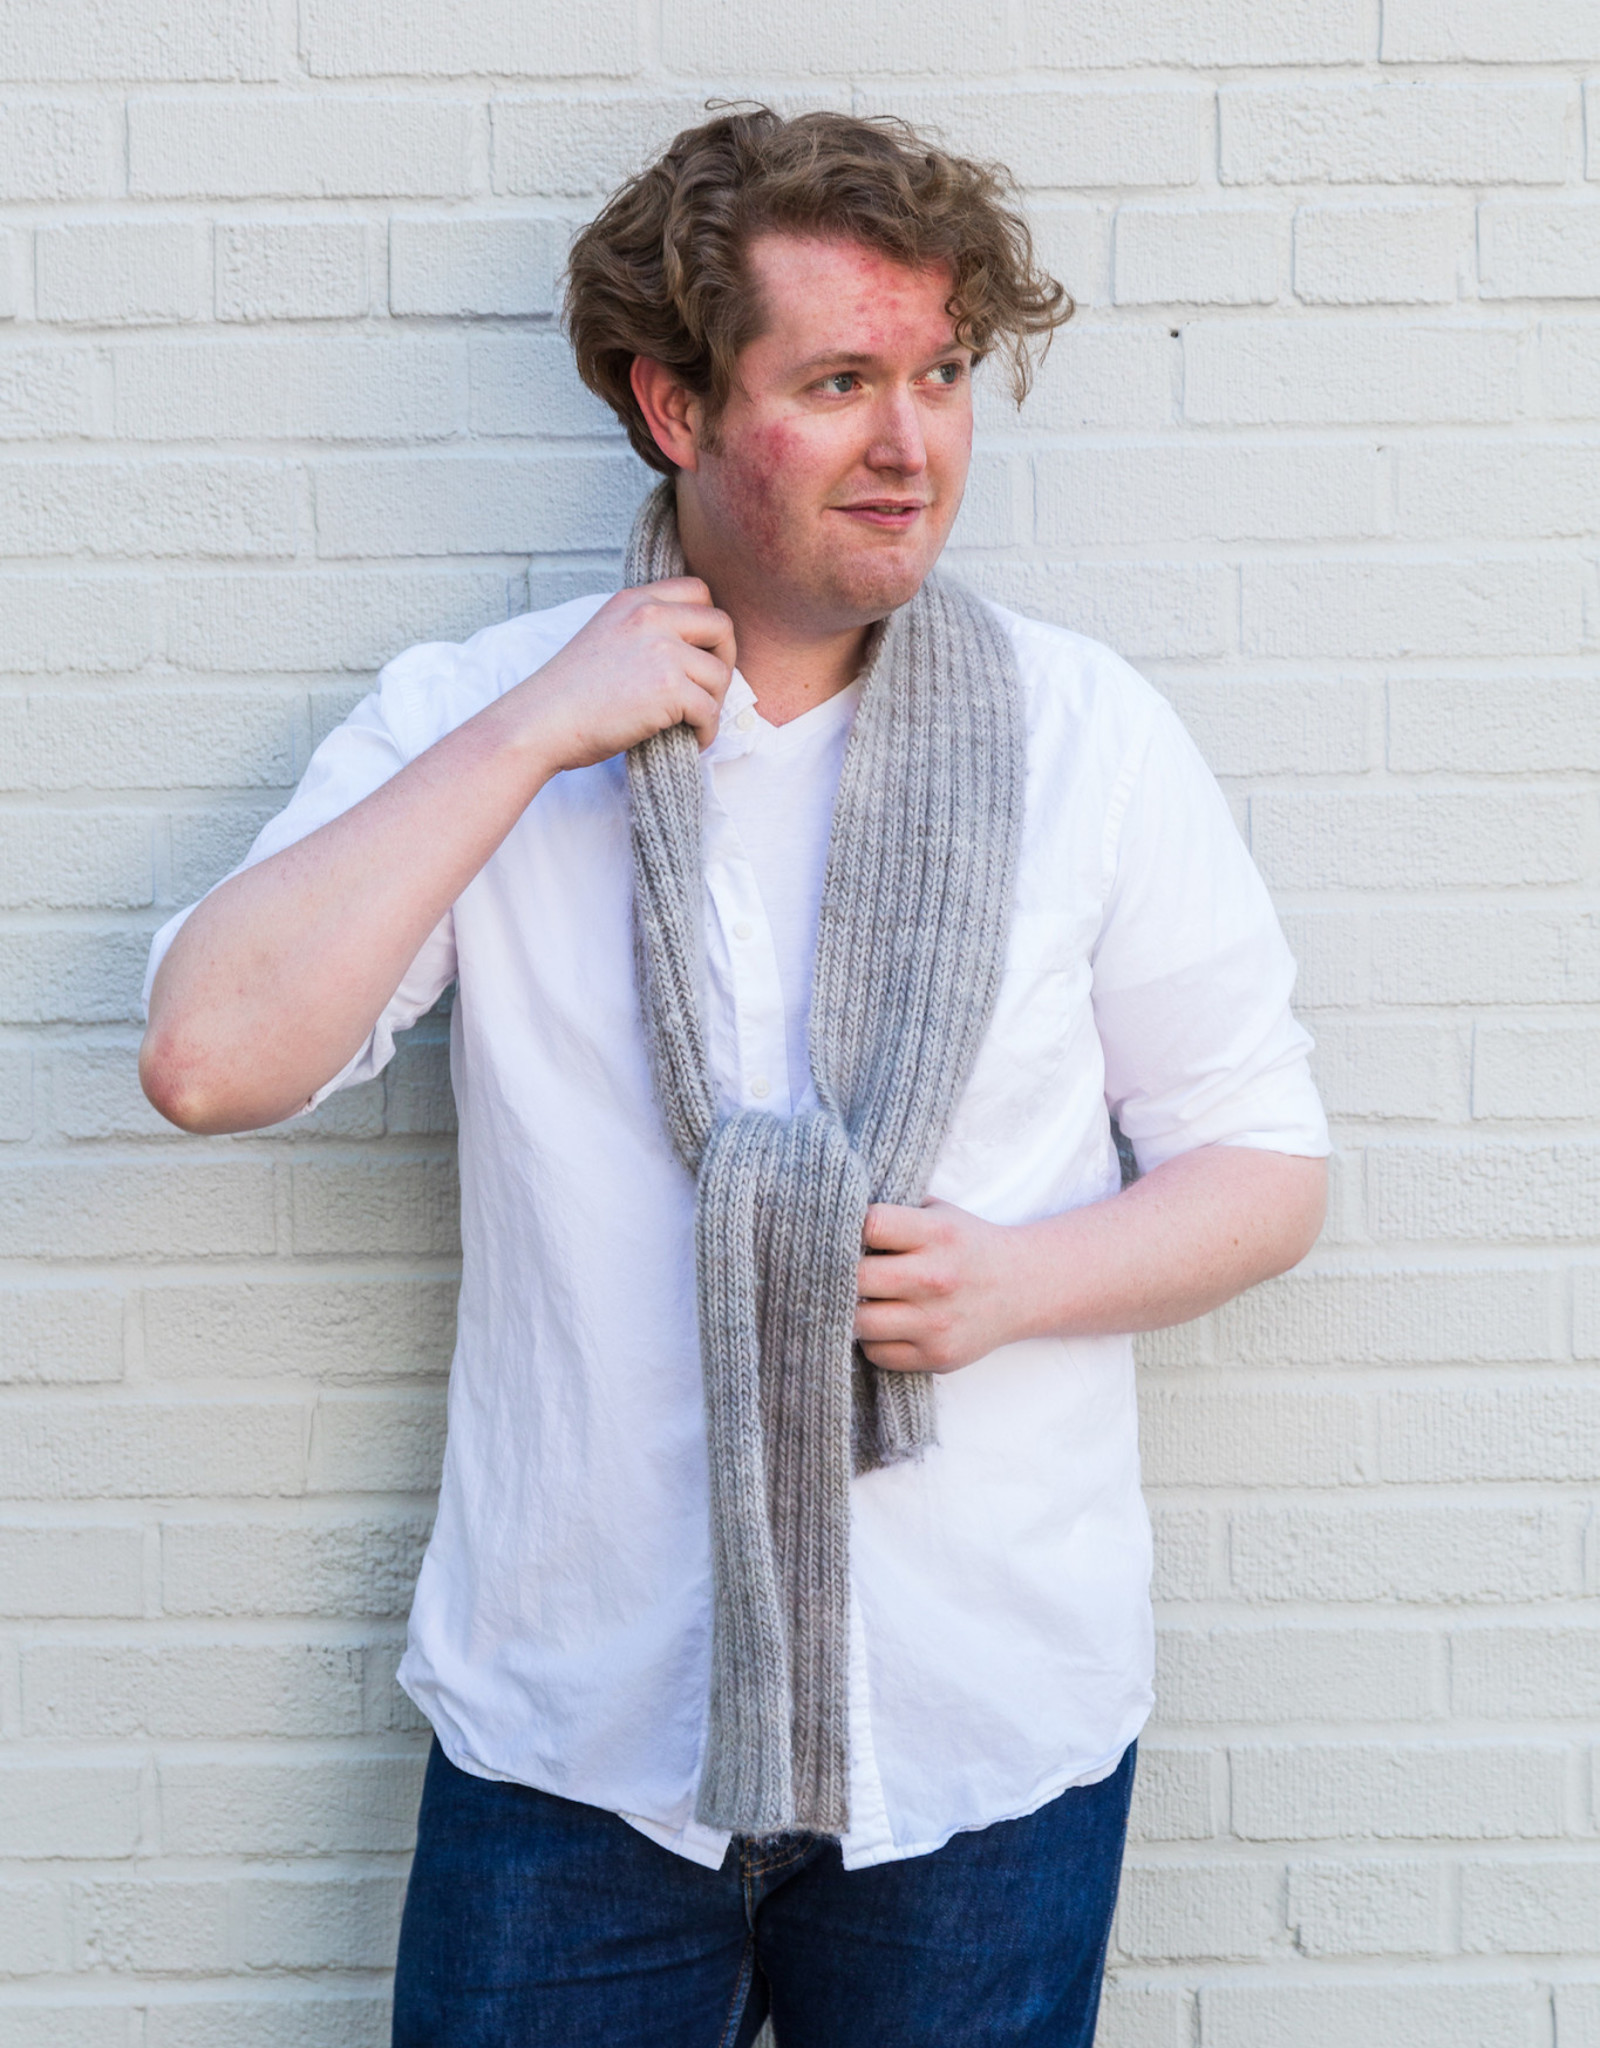 fibre space Learn to Knit Kit - Scarf